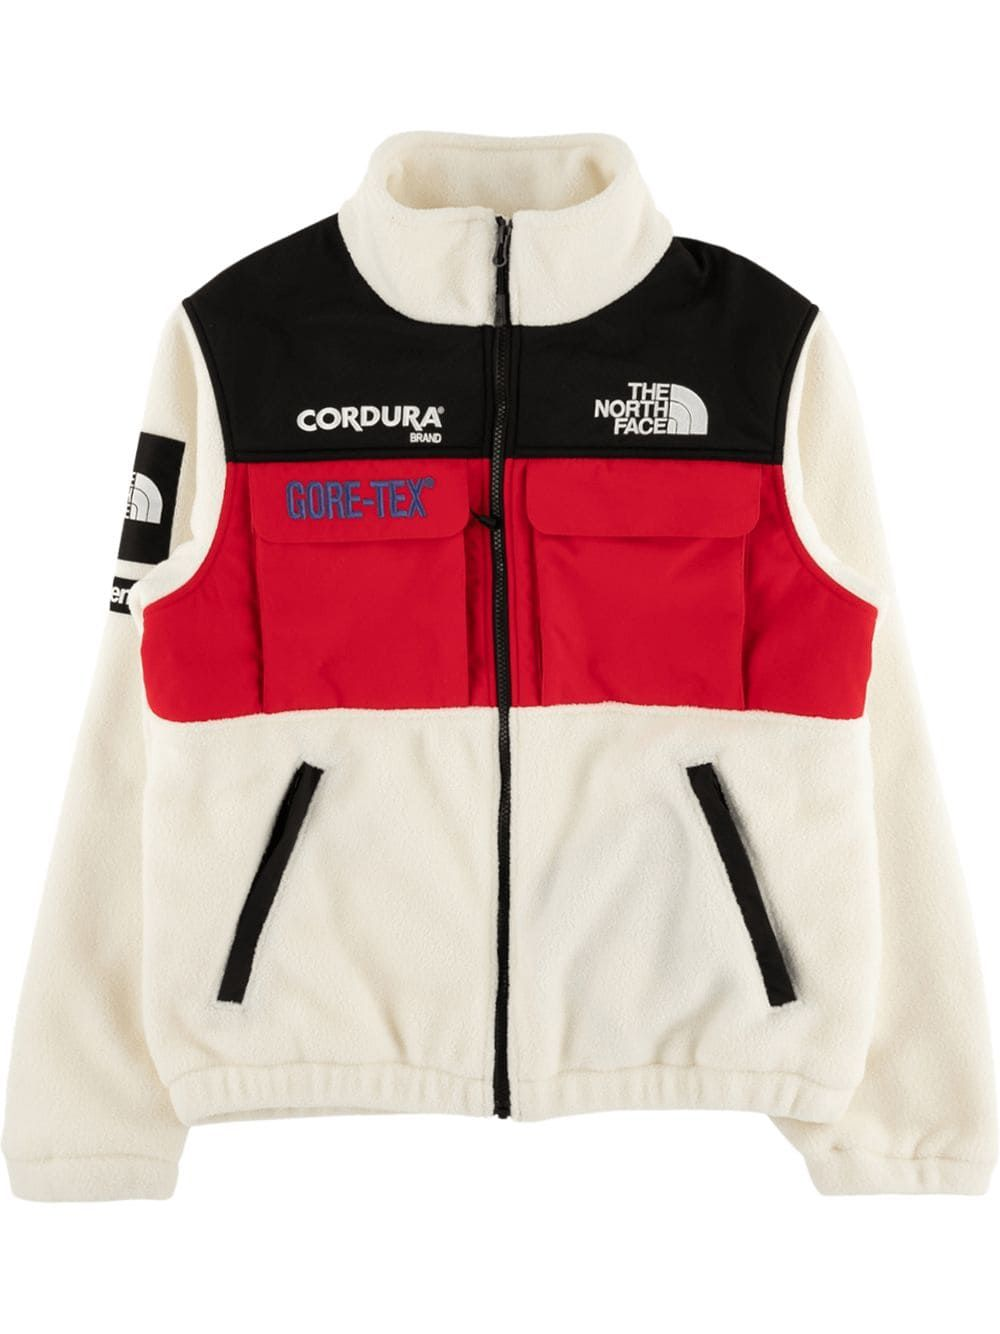 Supreme X The North Face Expedition Fleece Jacket Farfetch In 2020 North Face Fleece Jacket Fleece Jacket The North Face